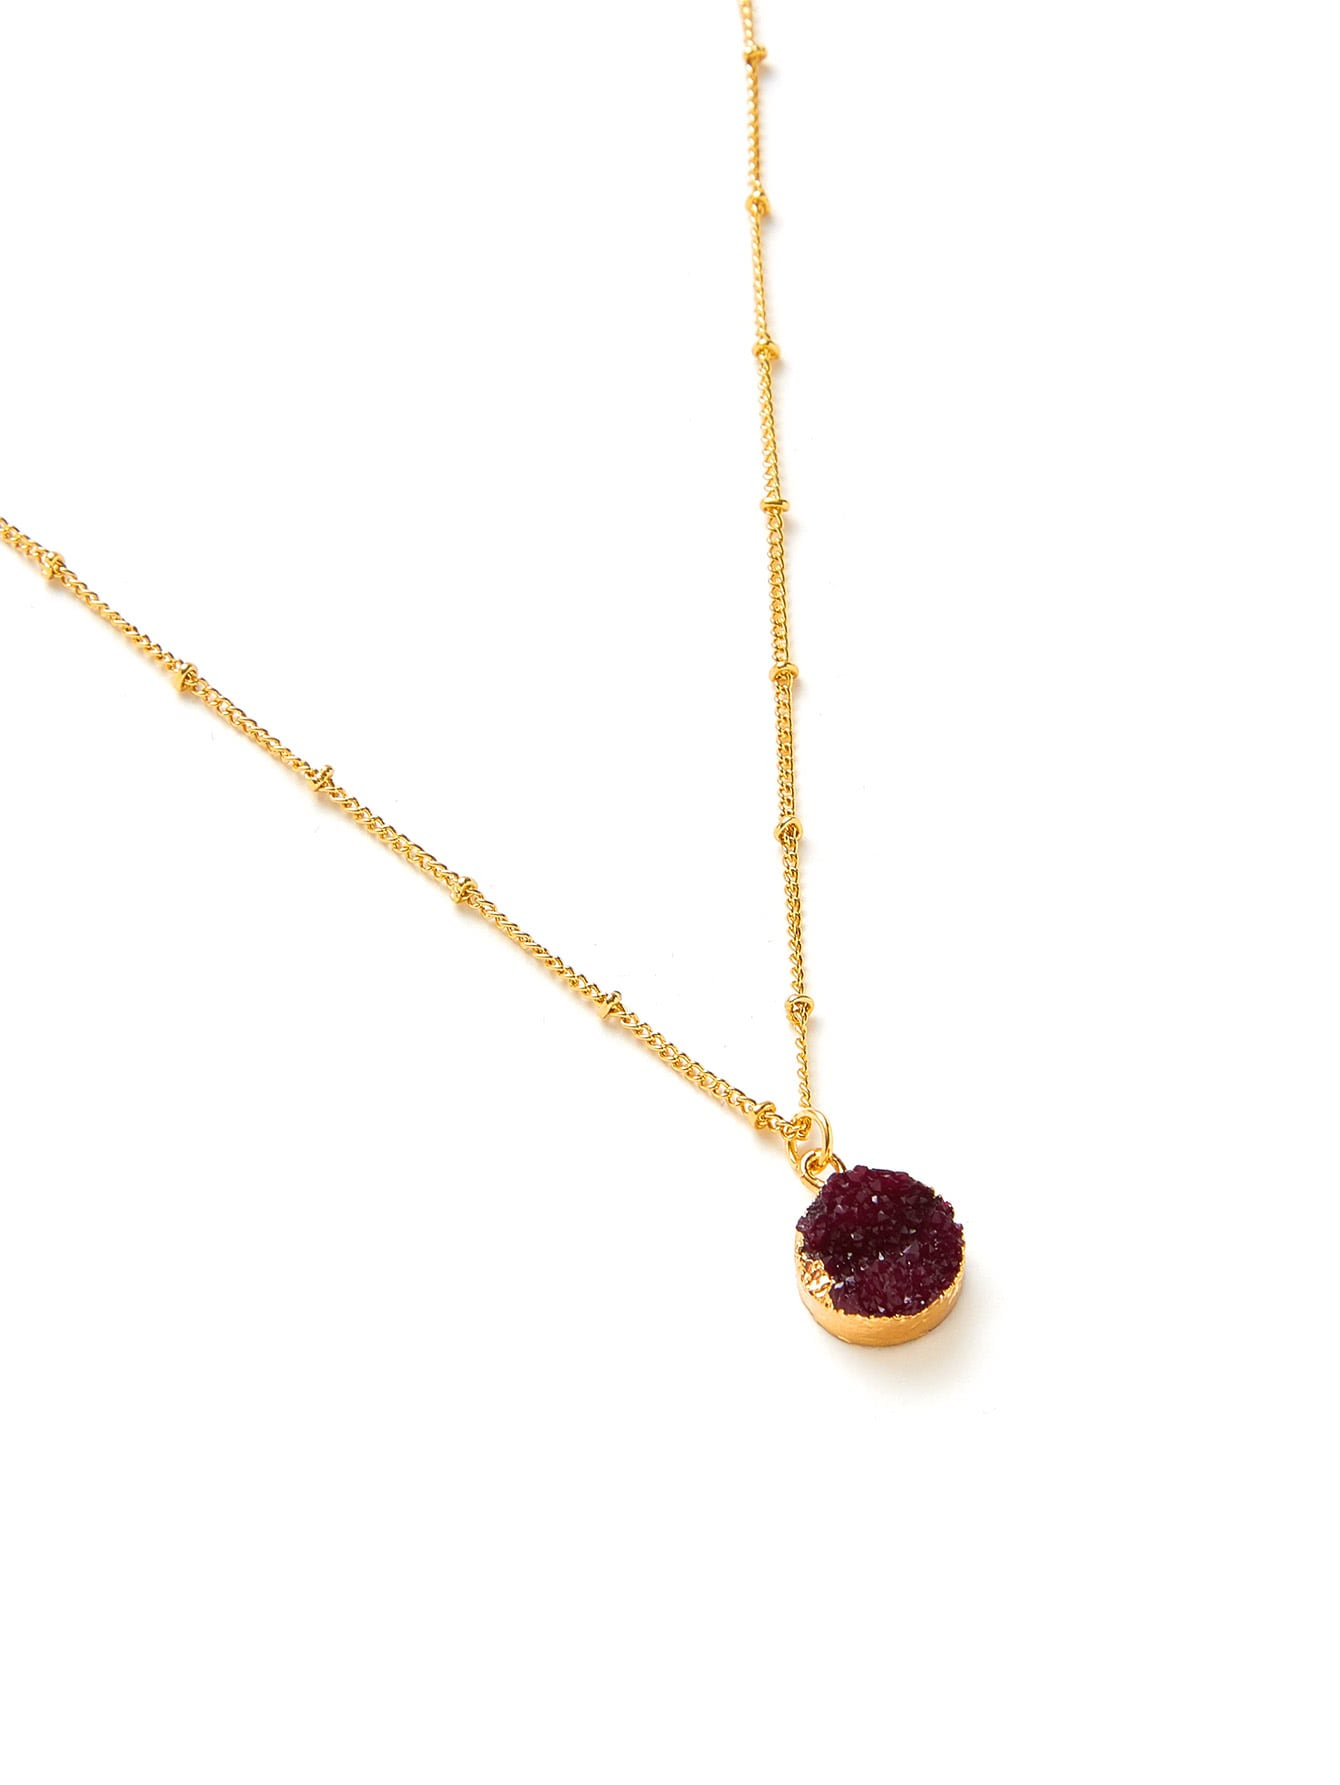 Round Pendant Beaded Chain Necklace For Recent Beaded Chain Necklaces (Gallery 22 of 25)